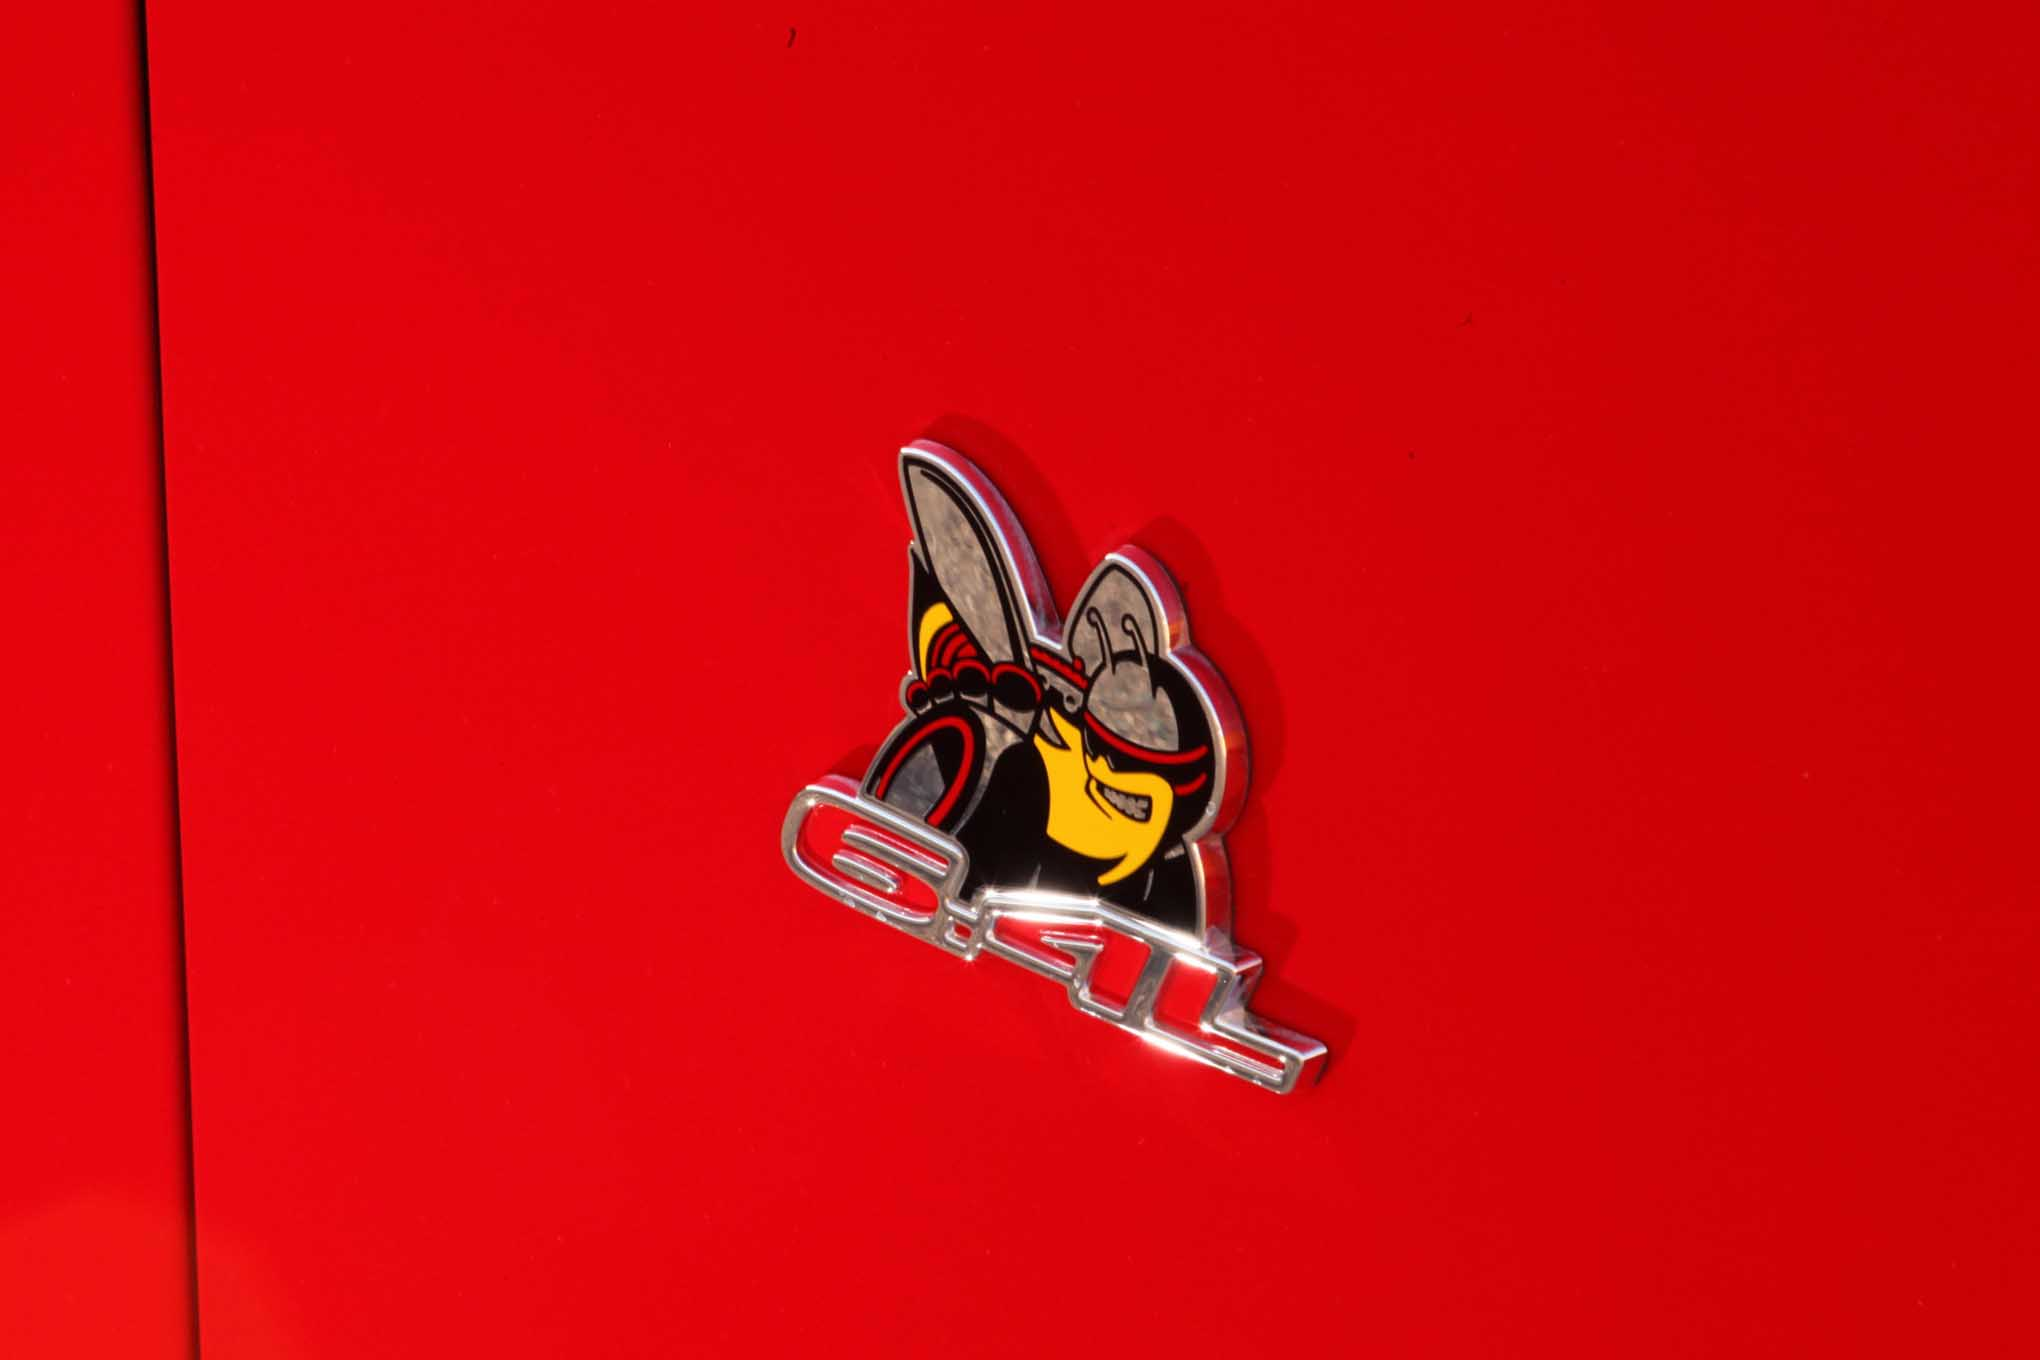 The Scat Pack Bumble Bee is the emblem all Mustang and Camaro guys are beginning to look for before picking a fight on the street! They already know better about the Hellcat.